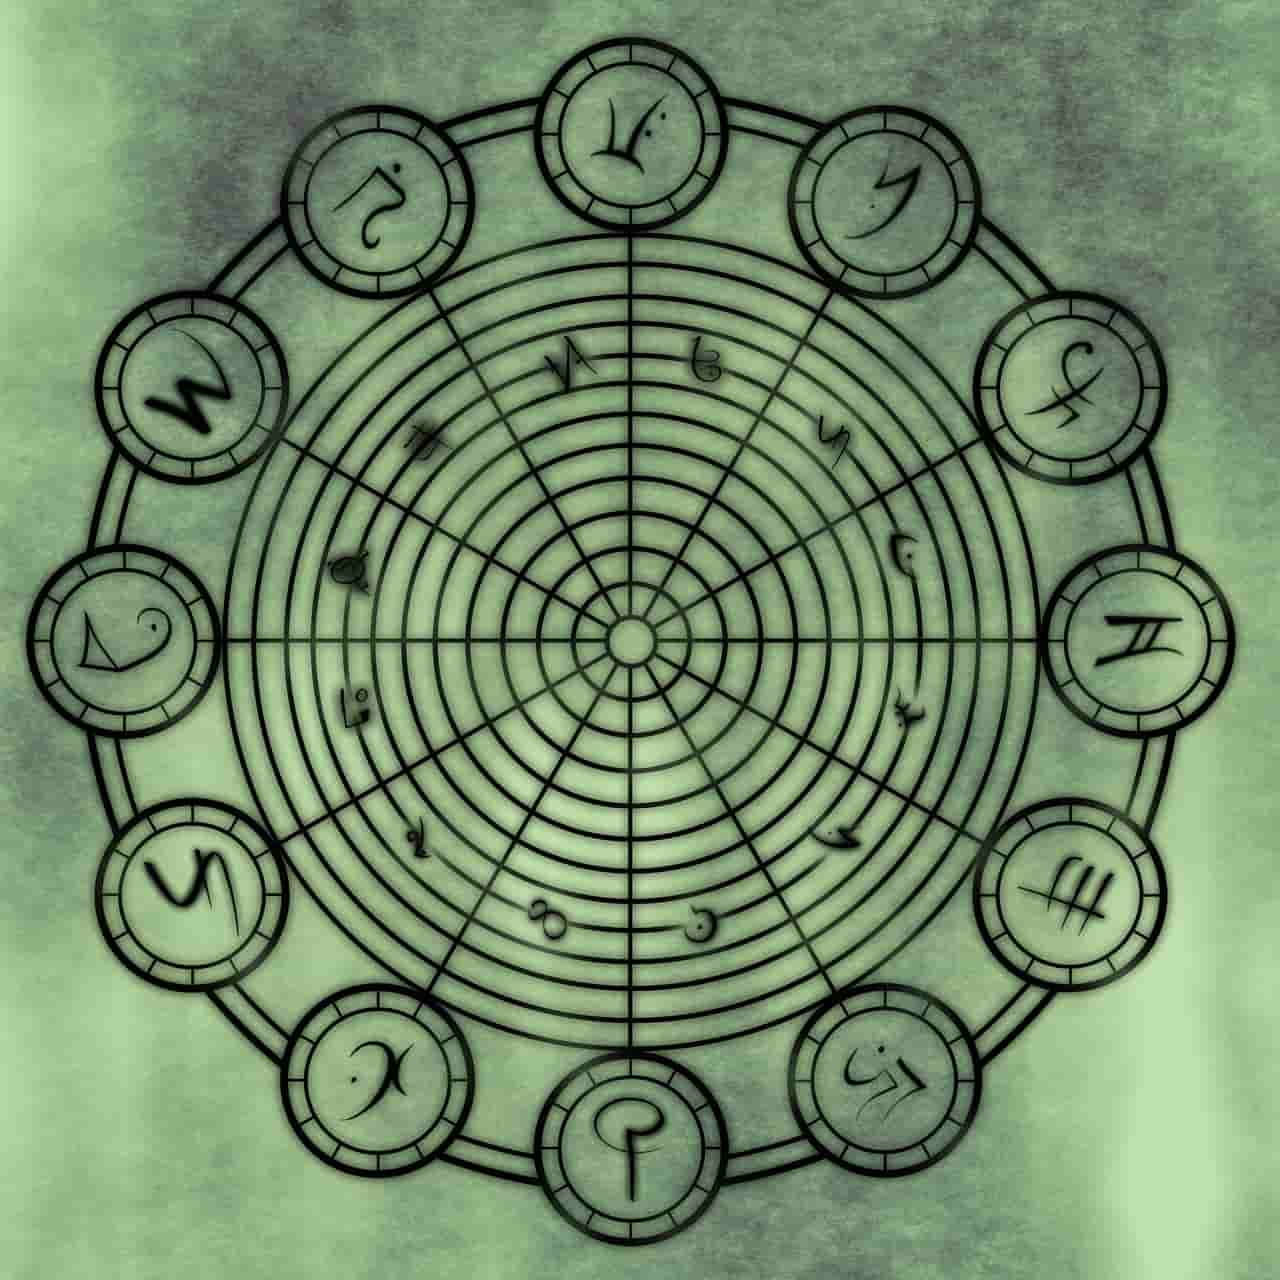 Image of a symbol that represents coagulation stage in spiritual alchemy